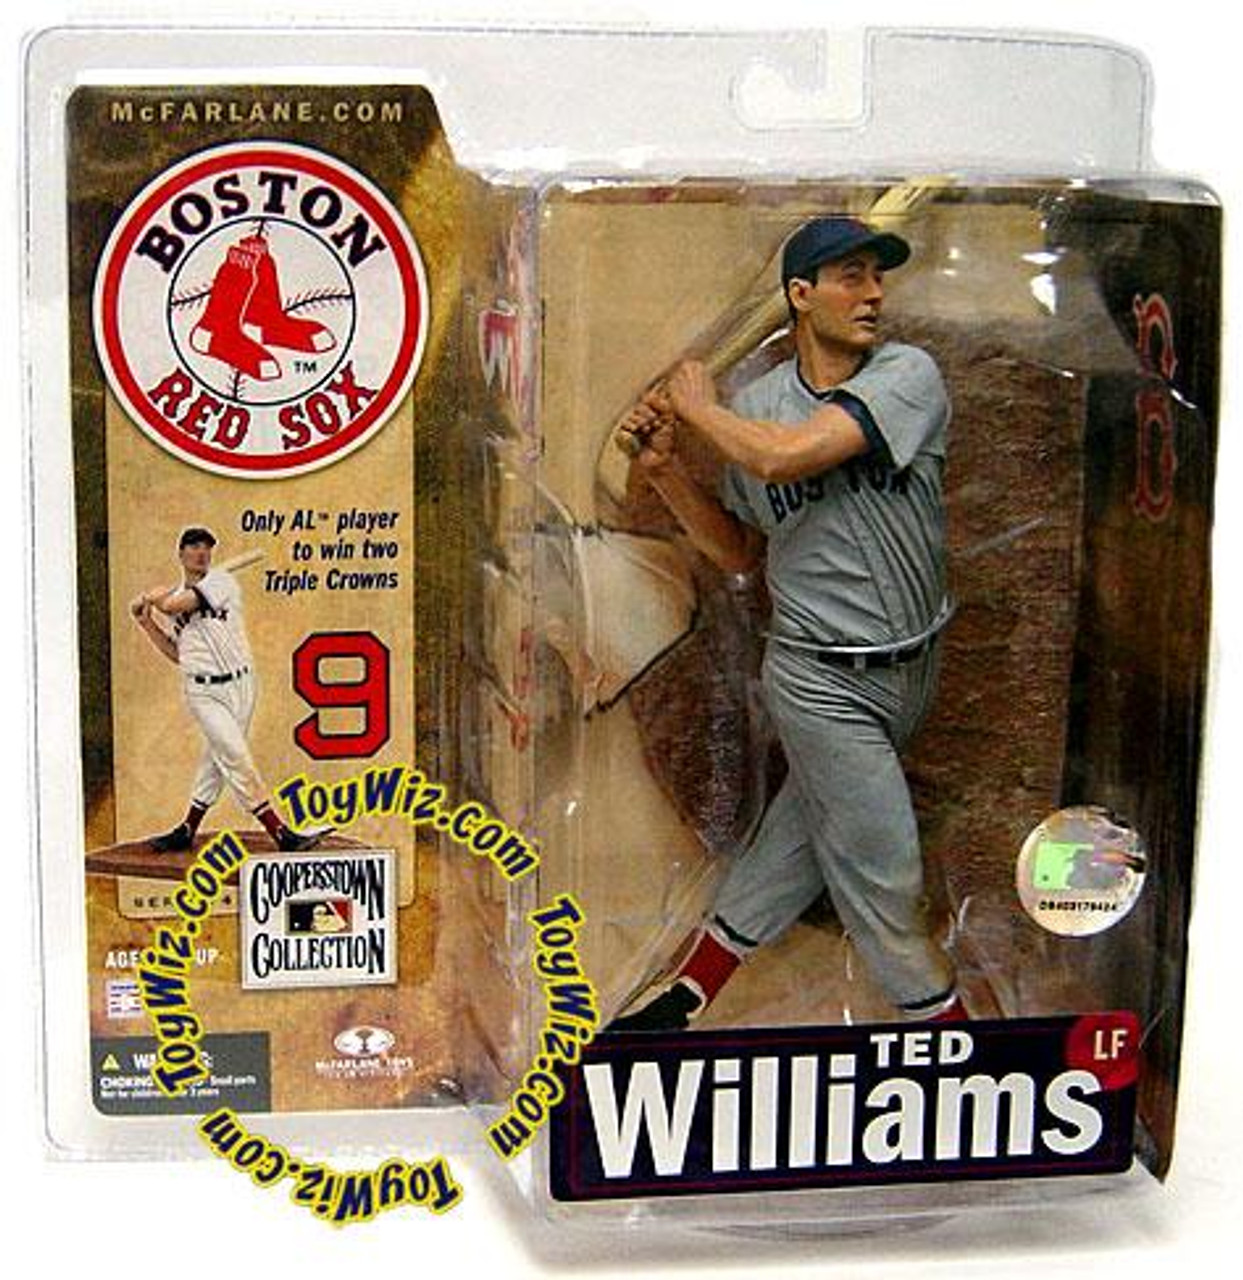 McFarlane Toys MLB Cooperstown Collection Series 4 Ted Williams (Boston Red Sox) Action Figure [Gray Uniform]